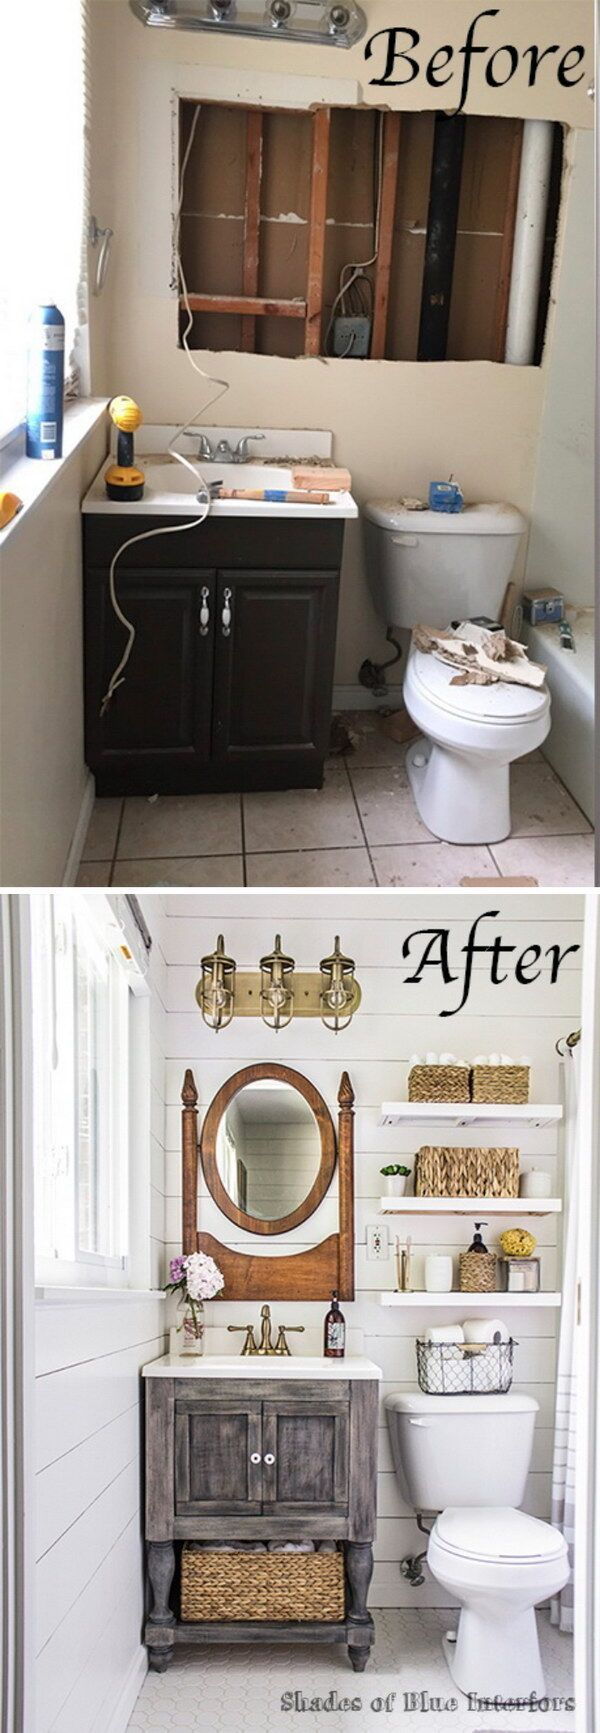 1000 ideas about bathroom before after on pinterest for Before and after bathroom makeovers